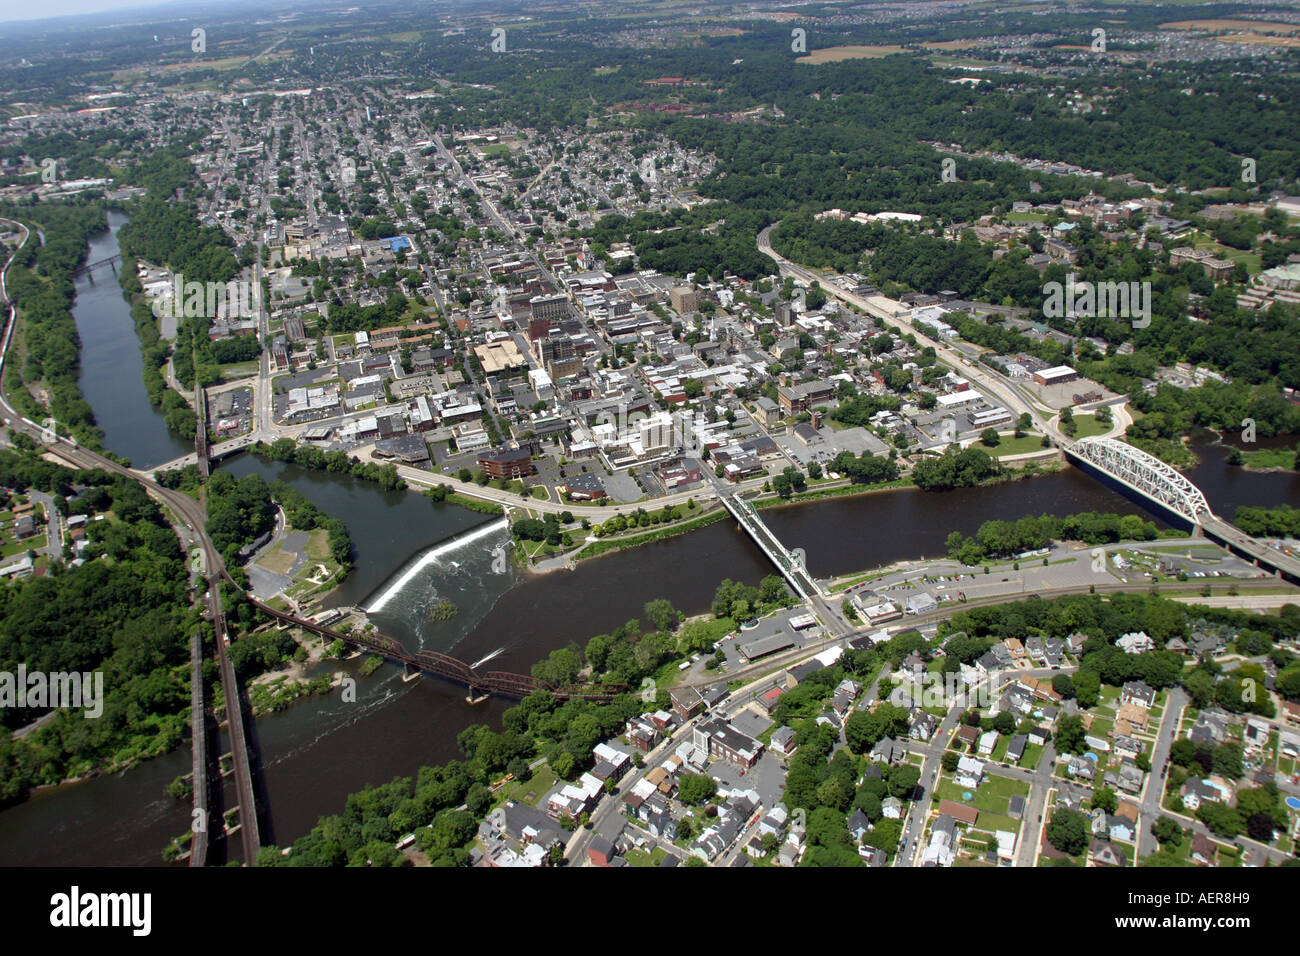 Aerial View Of The City Of Easton Stock Photos & Aerial View